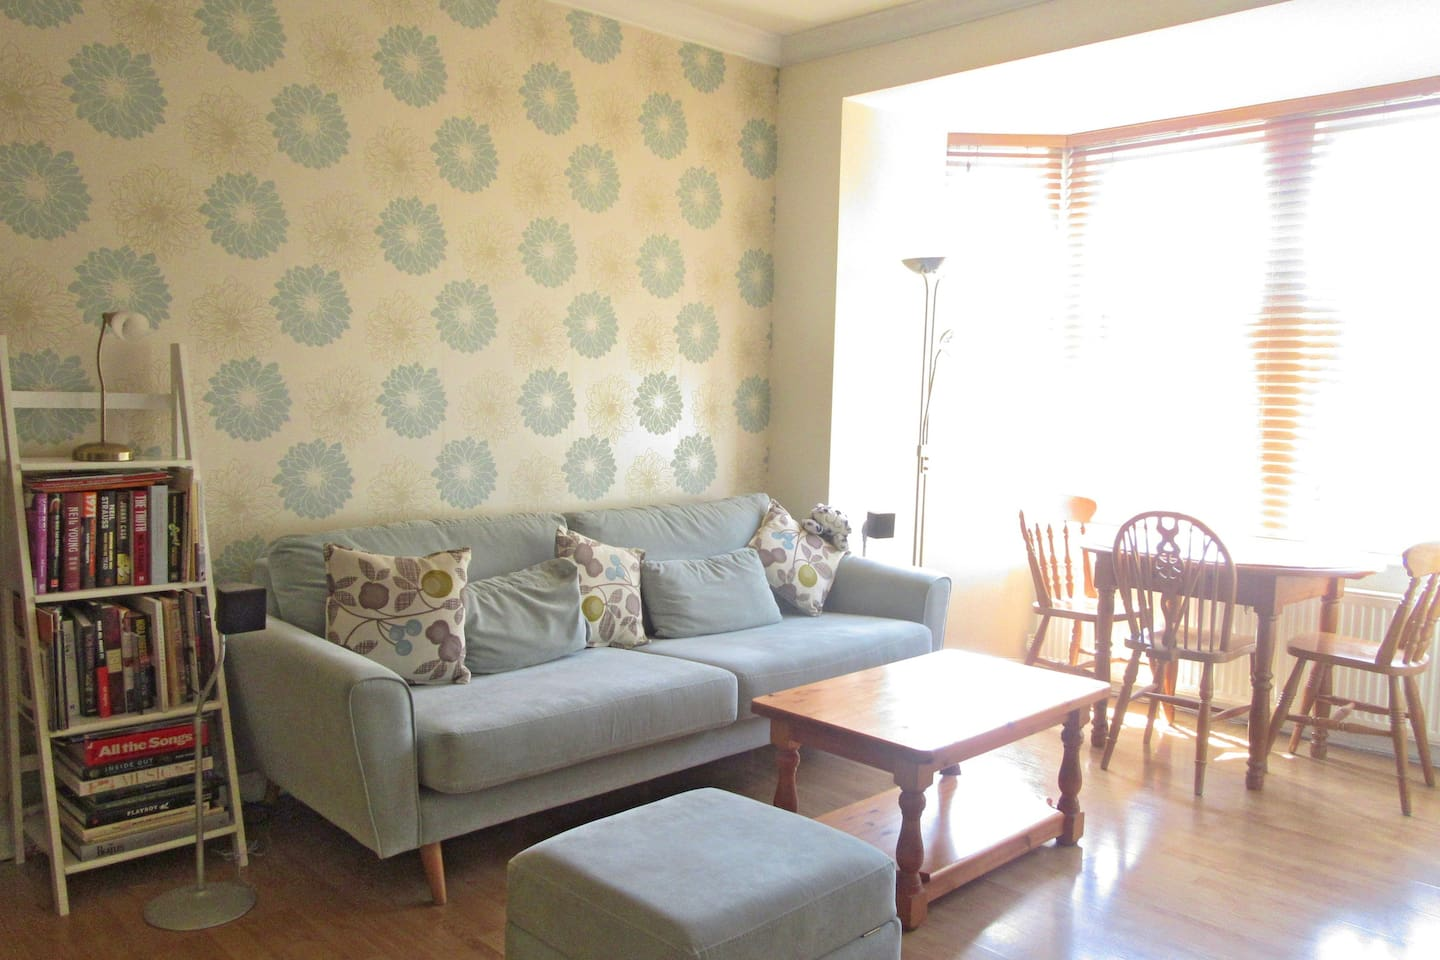 Here you can see just how bright and airy the living room can be with the blinds open on a lovely summer's day.